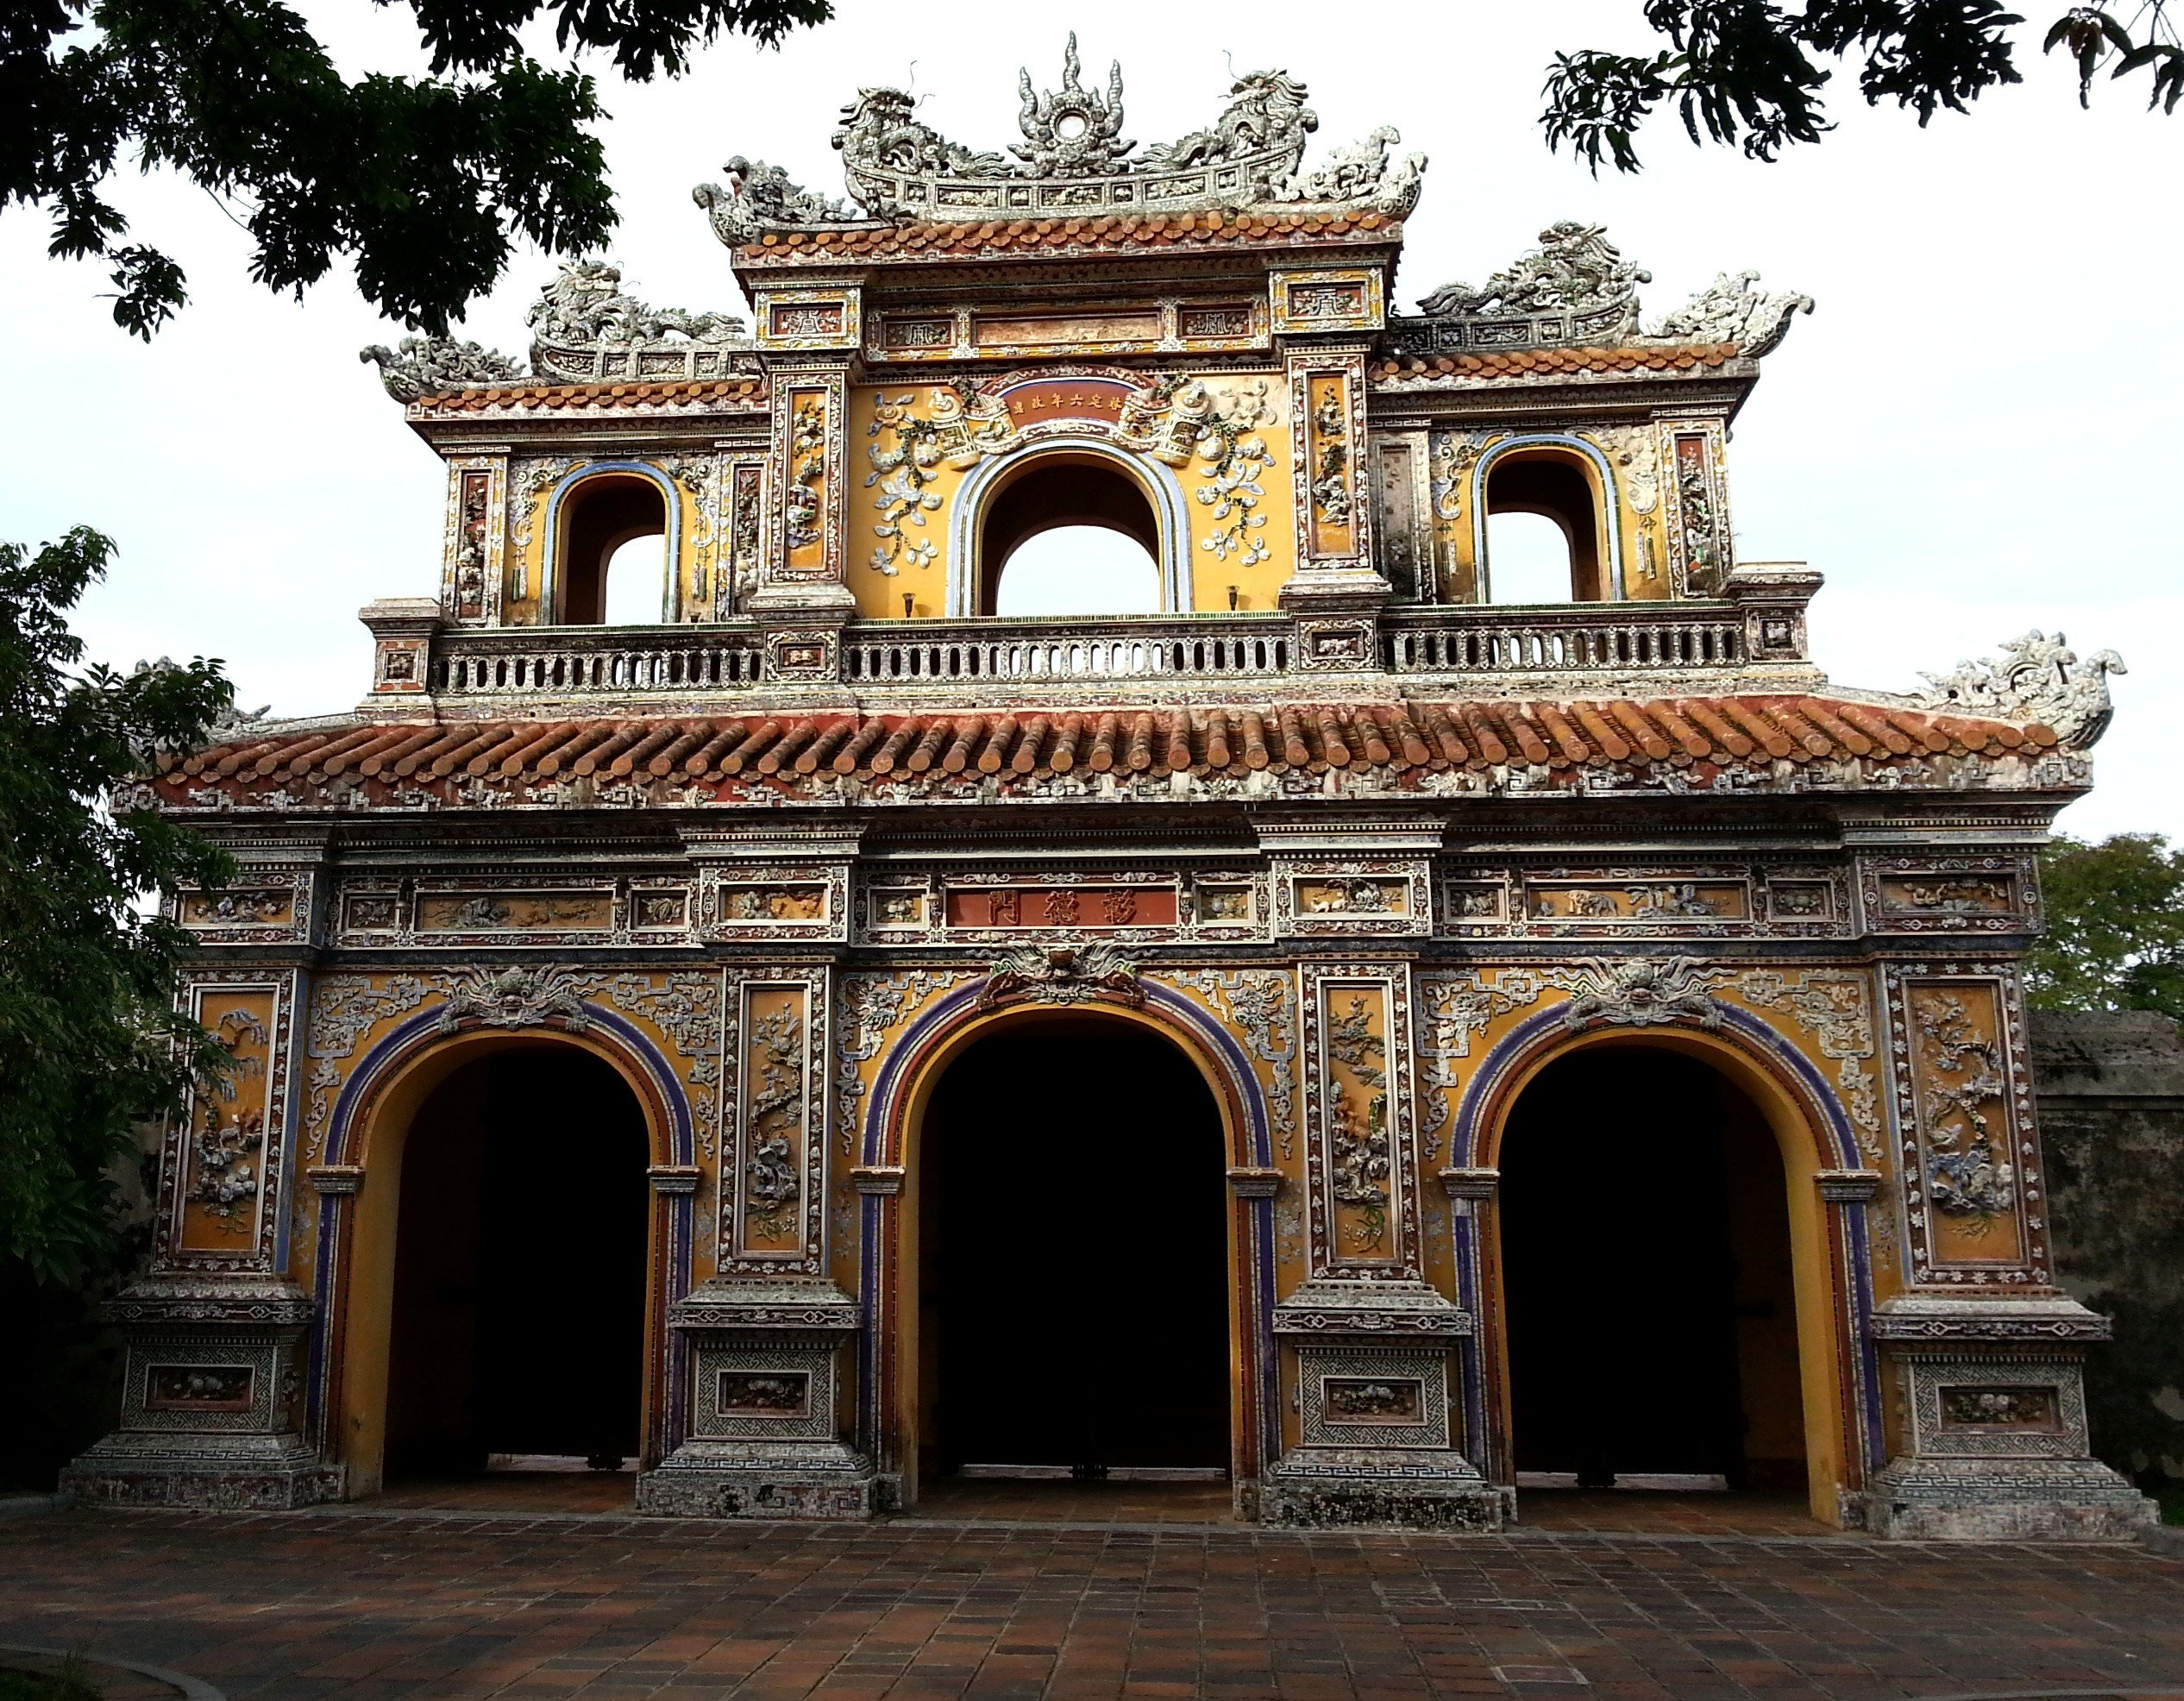 Gate of Manifest Benevolence at the Imperial Citadel